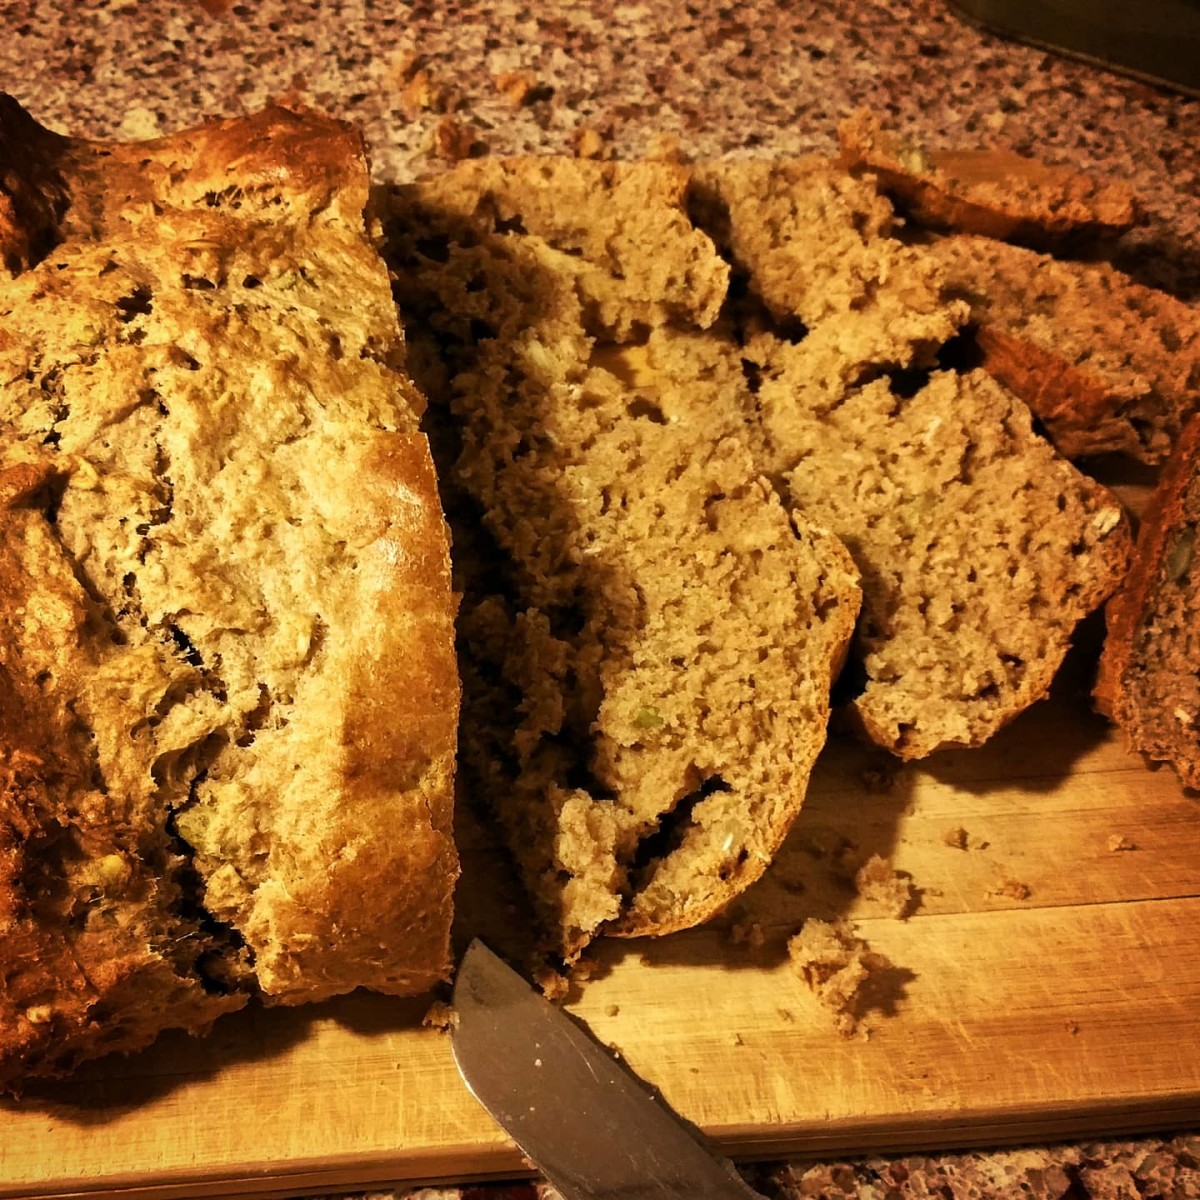 Making bread with whole food ingredients does wonders for the nutritional content, and therefore, for your waistline.